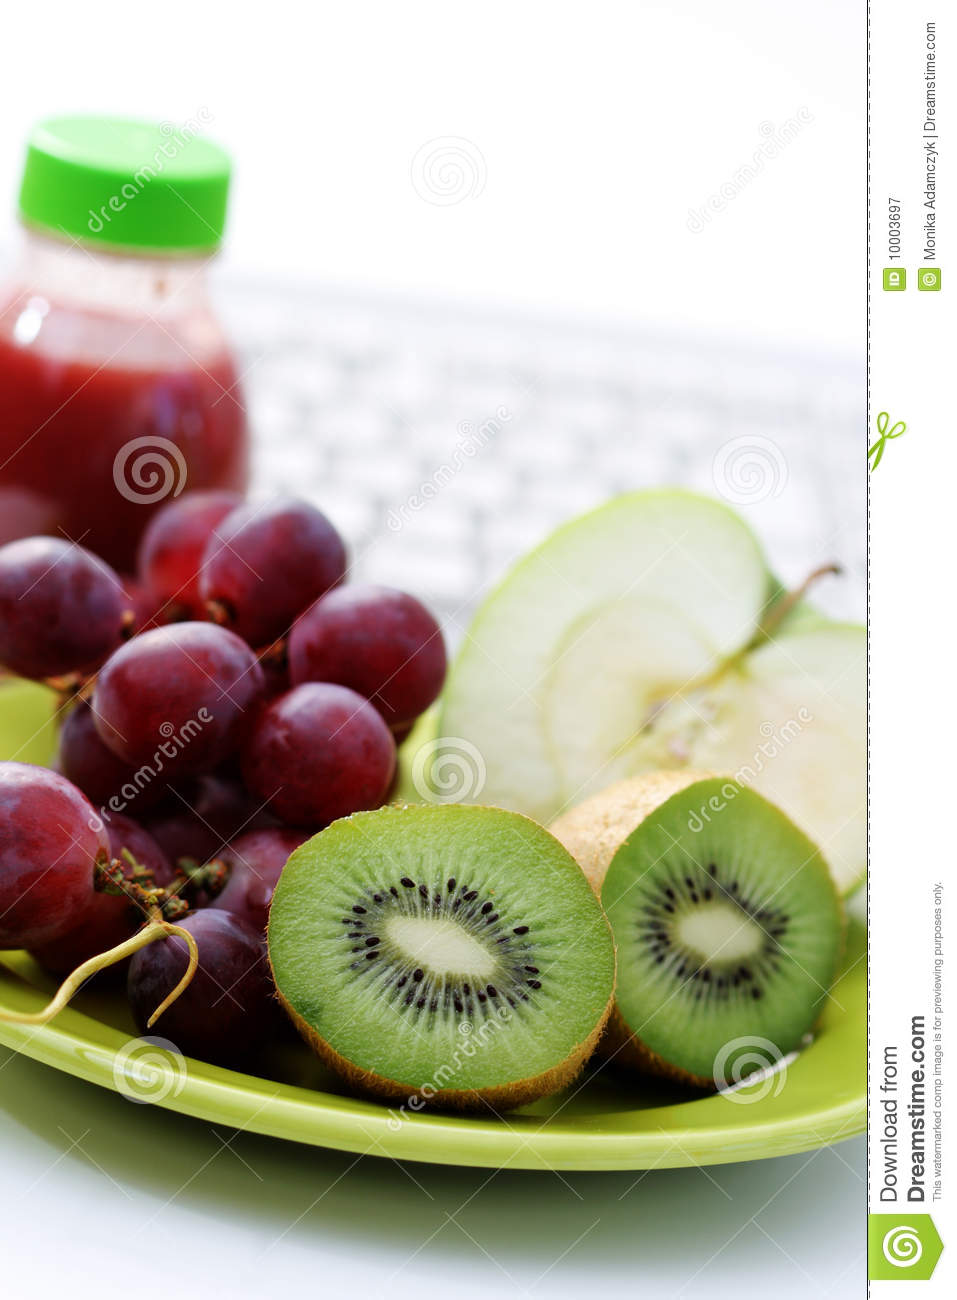 Download Fruits stock image. Image of meal, office, apple, diet - 10003697